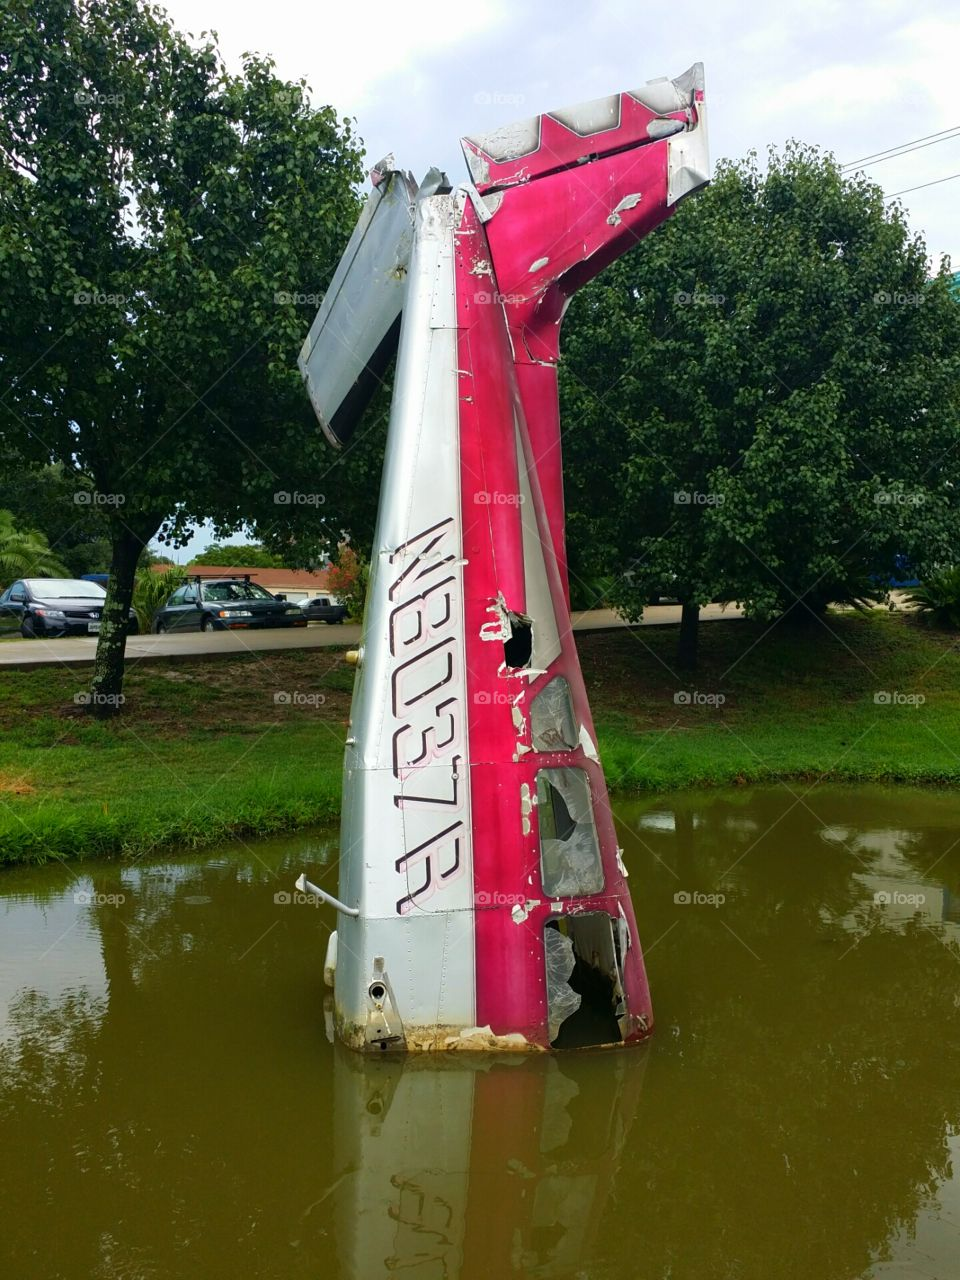 Just a Wrecked Plane. Small plane used as an attention-getter in front of a business.